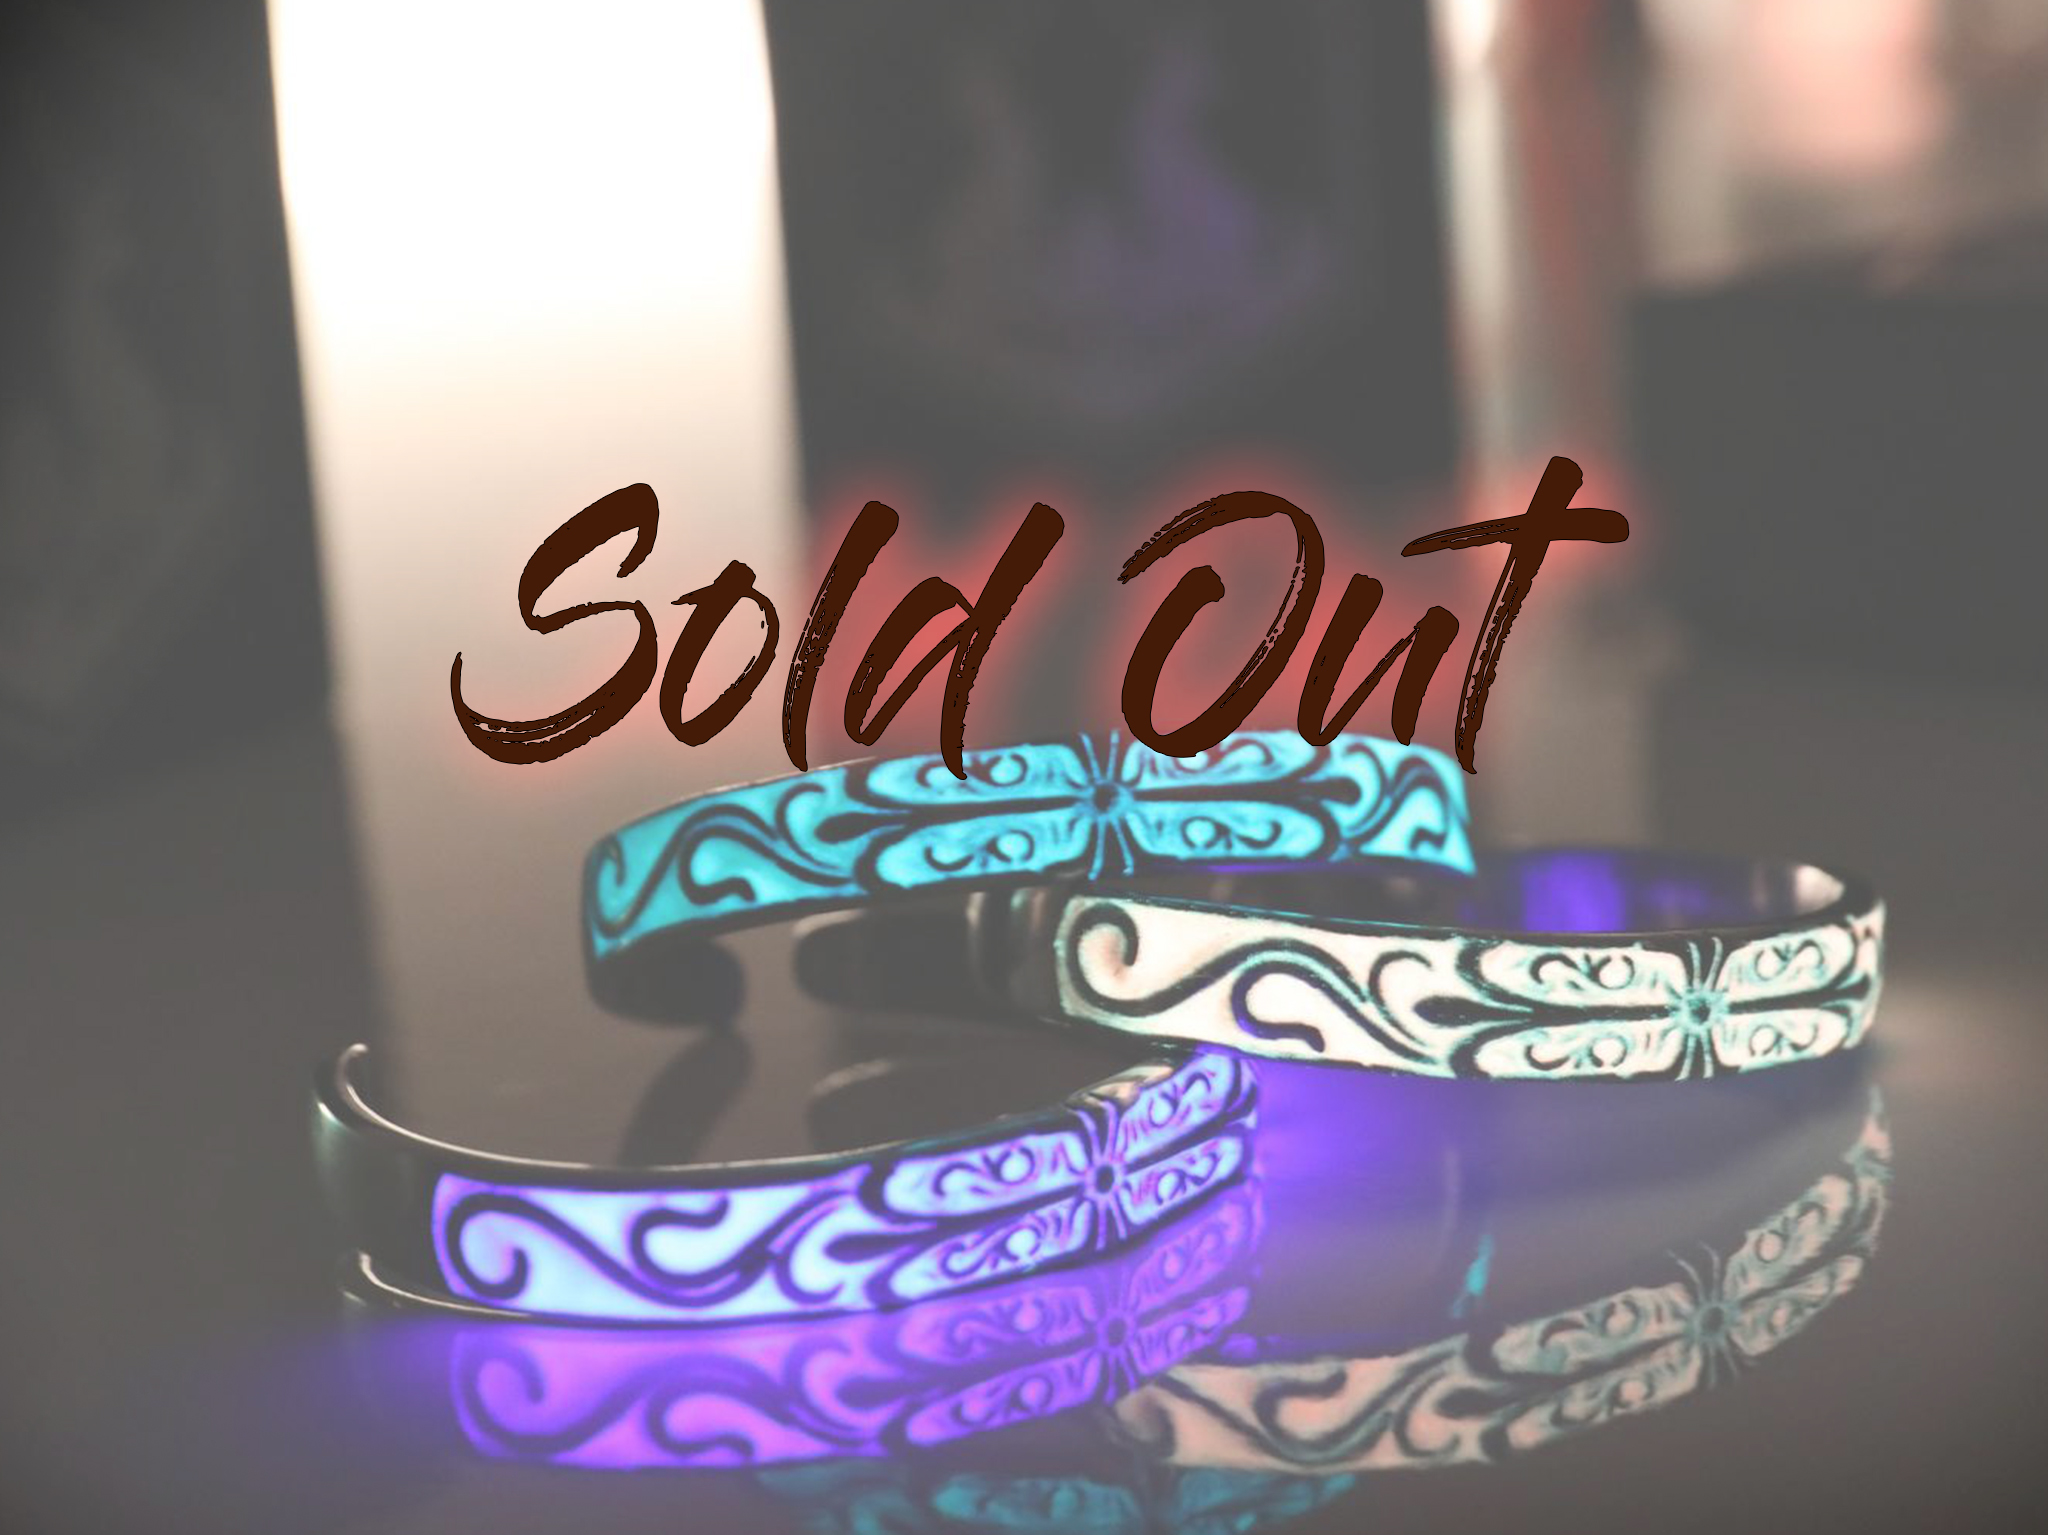 sold out fileca